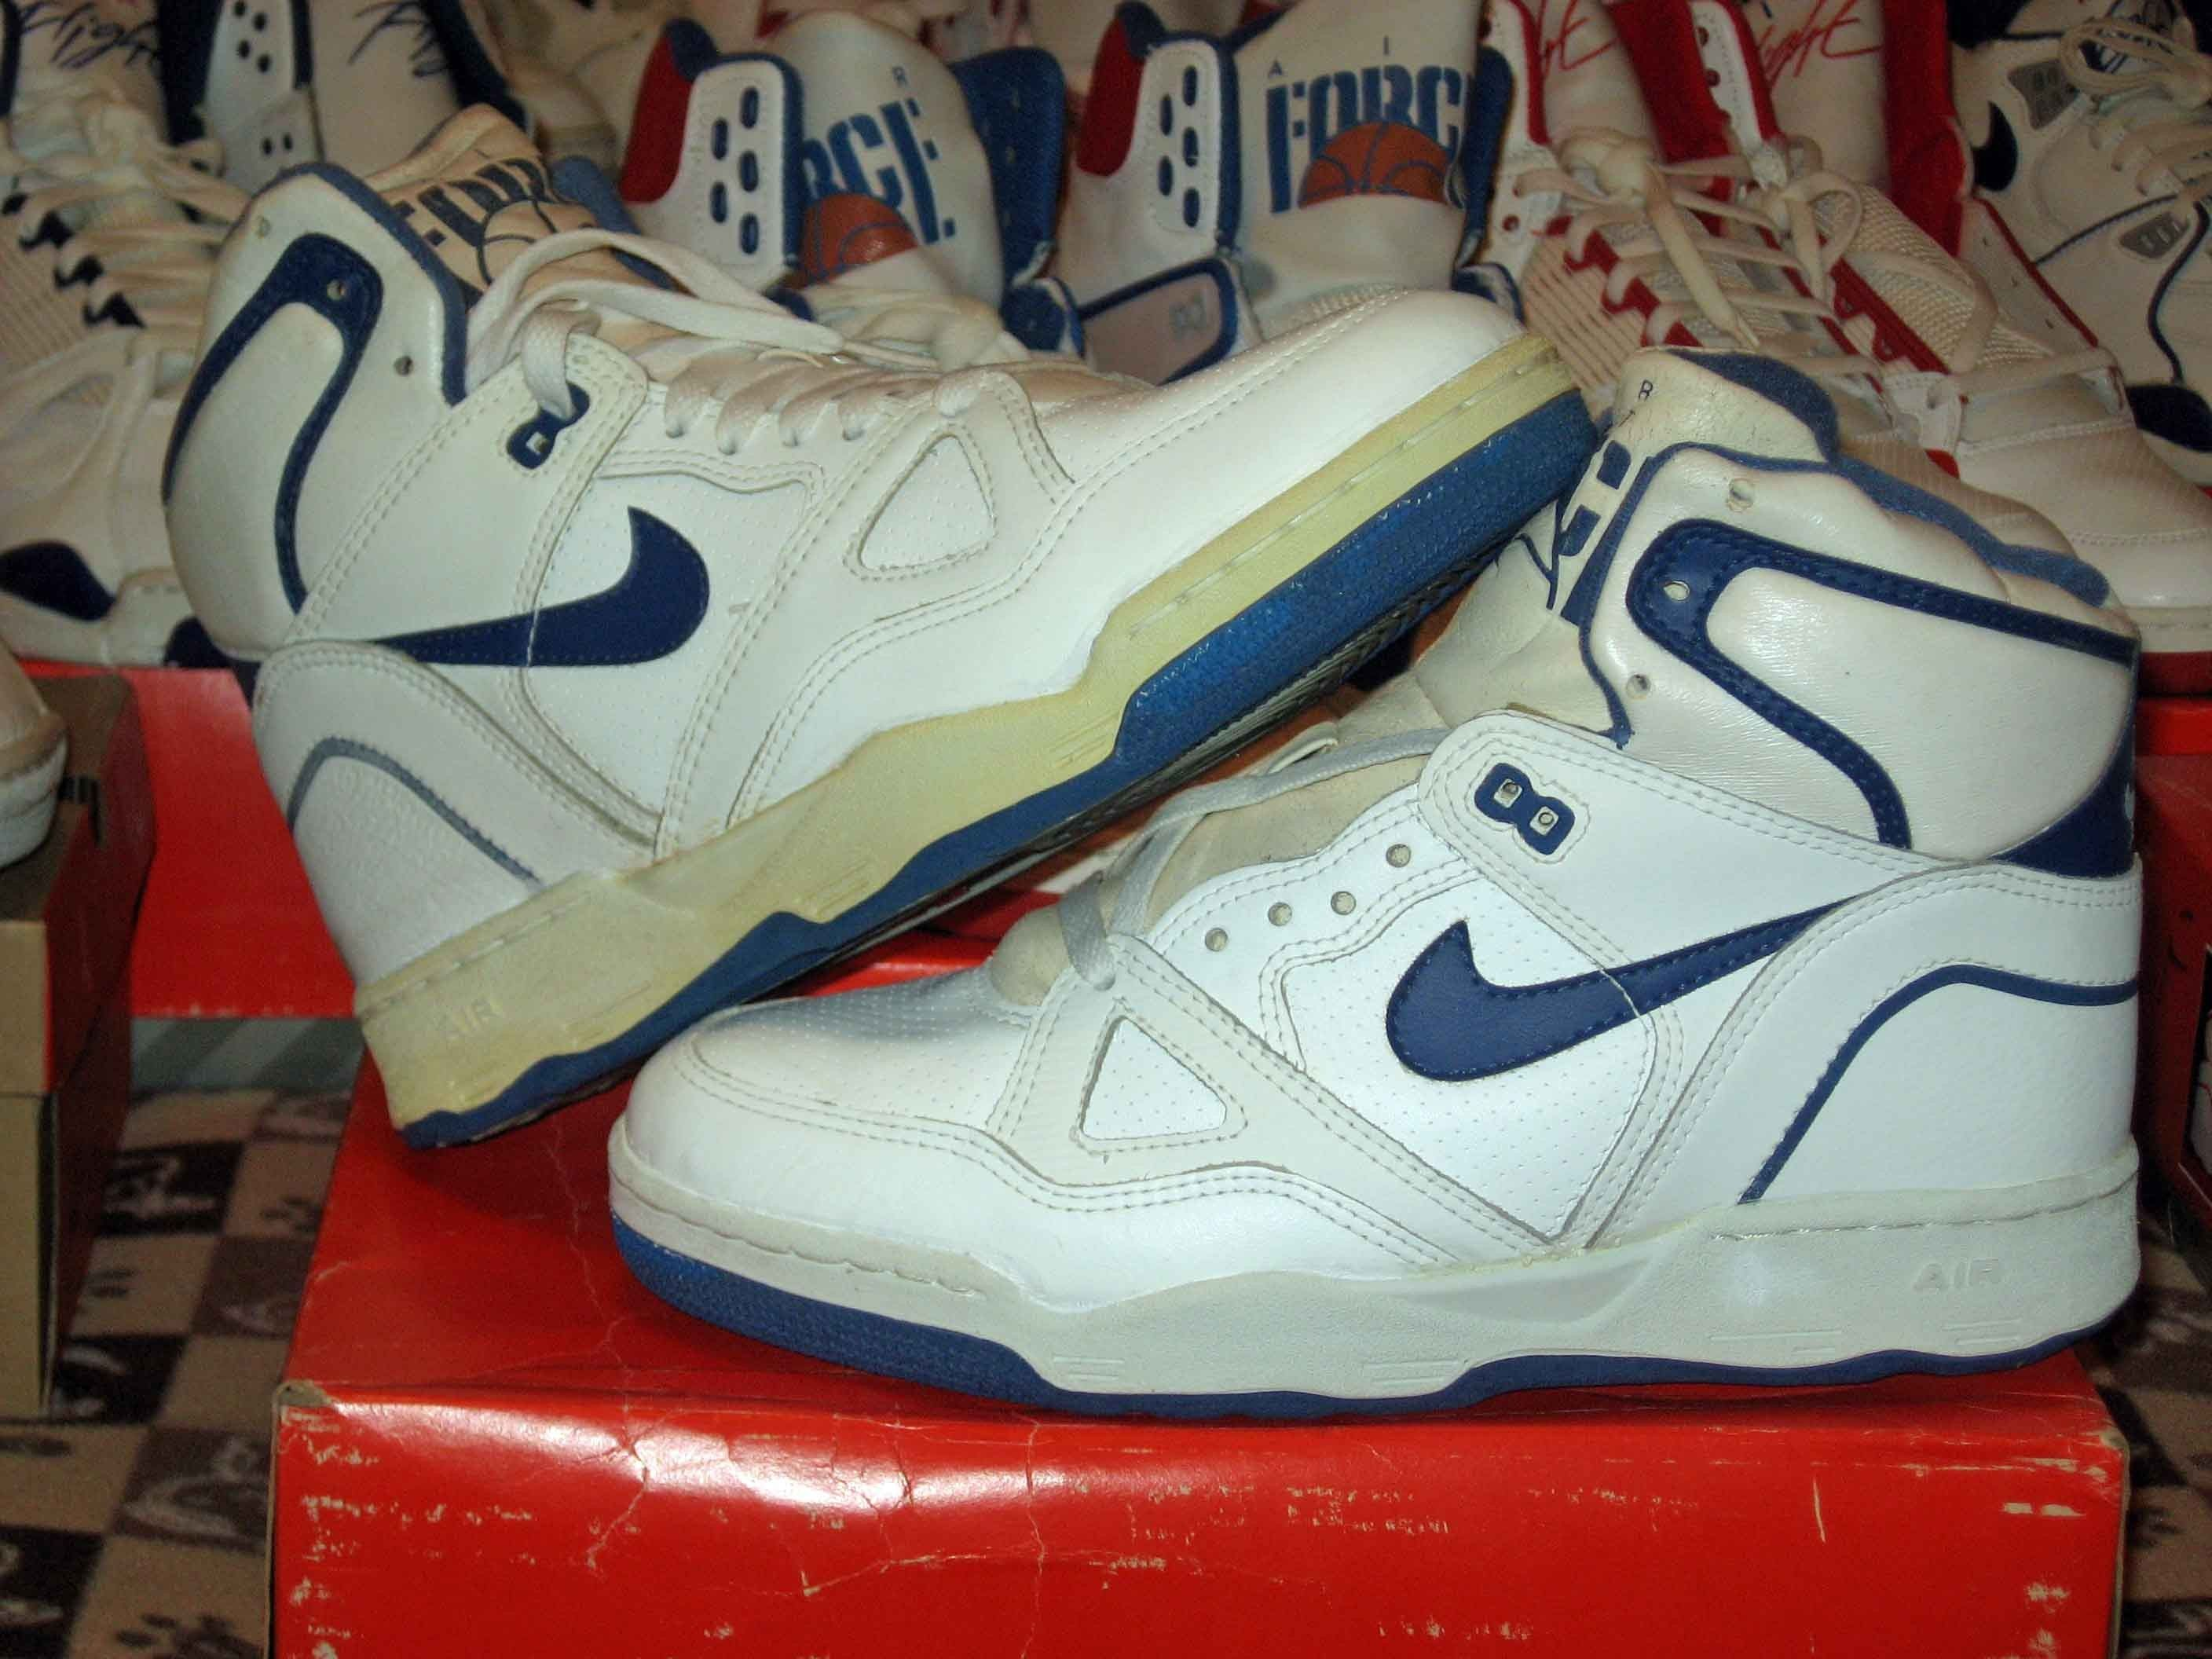 superior quality 34345 ba6e2 Tenis Basketball, 1980s Shoes, Nike Air Force, Old School, Tennis, Kicks